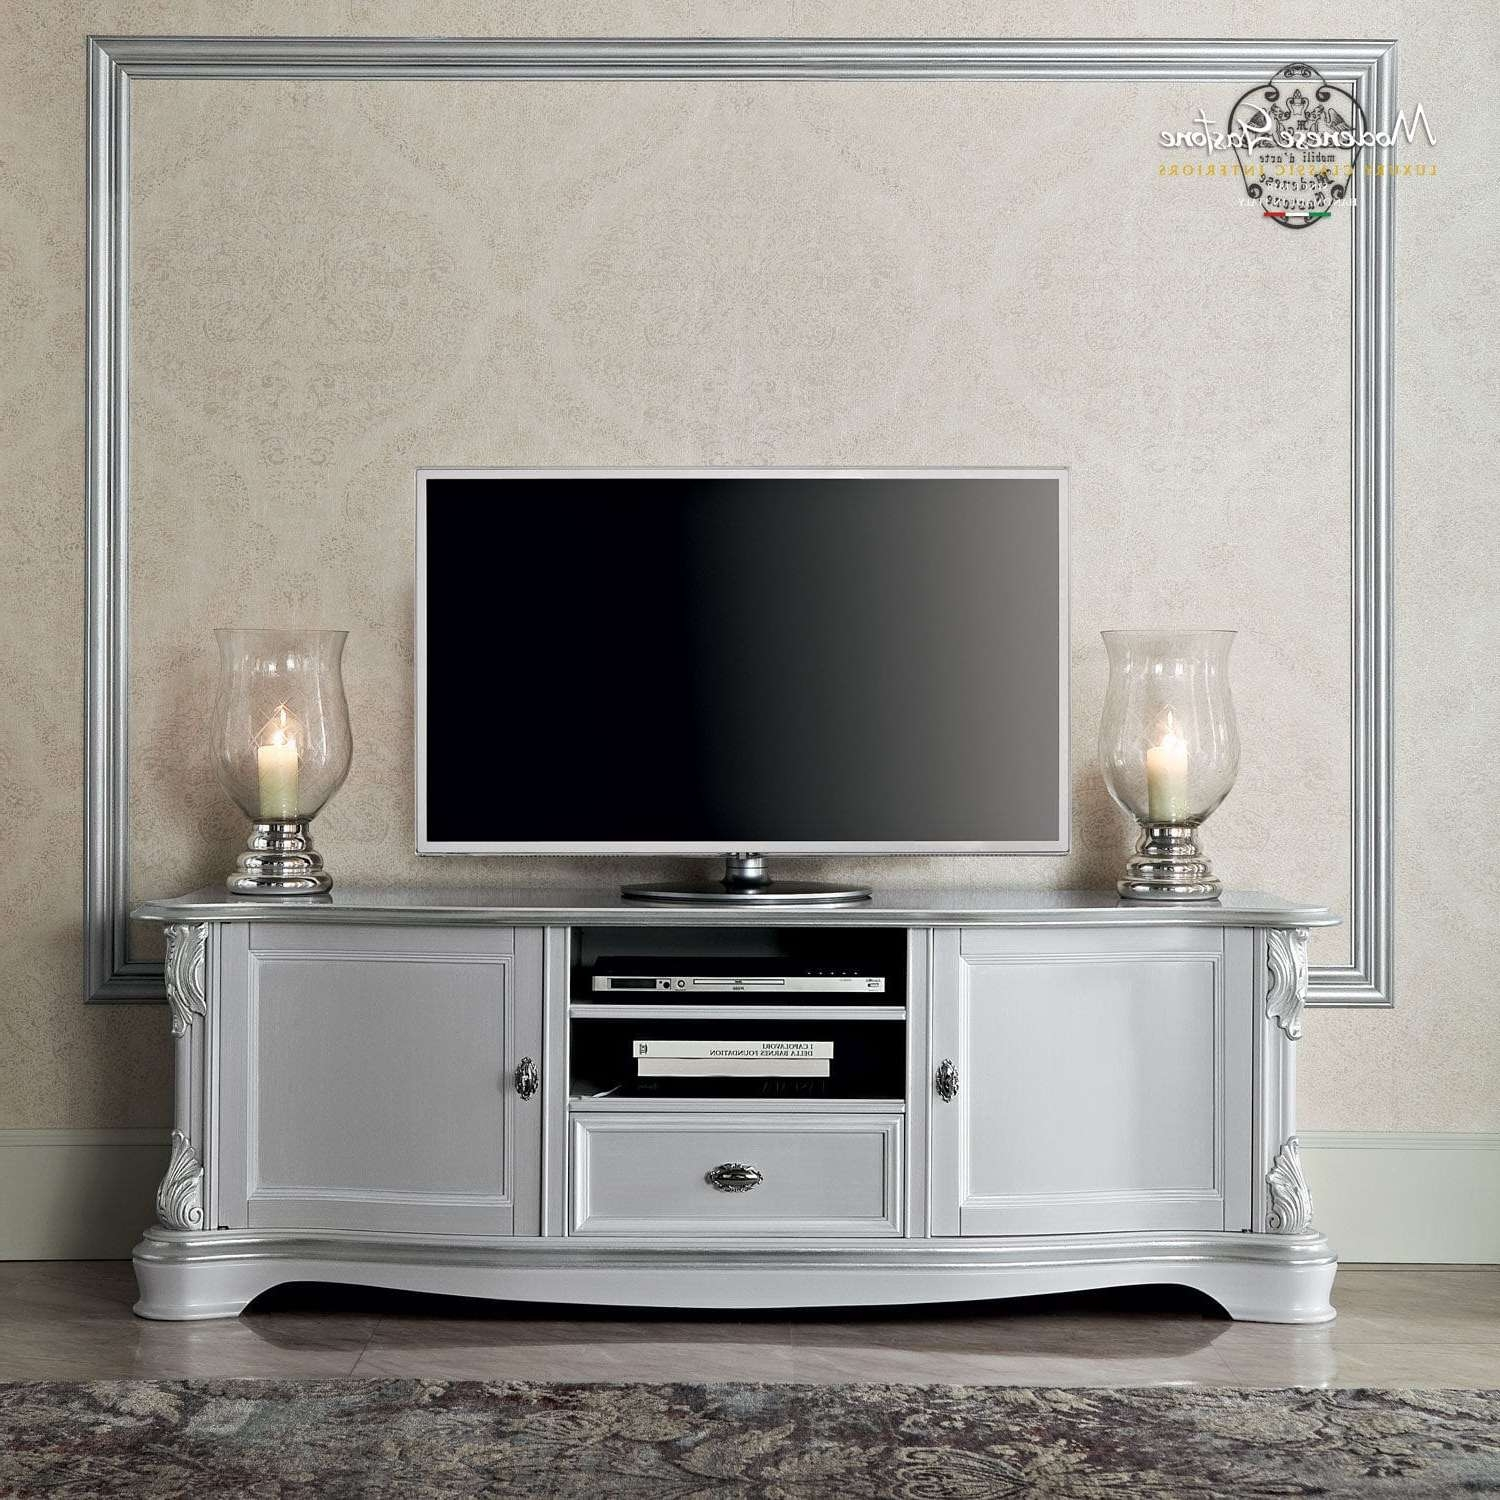 Classic Tv Cabinet / Solid Wood – Bella Vita – Modenese Gastone Inside Classic Tv Cabinets (View 2 of 20)